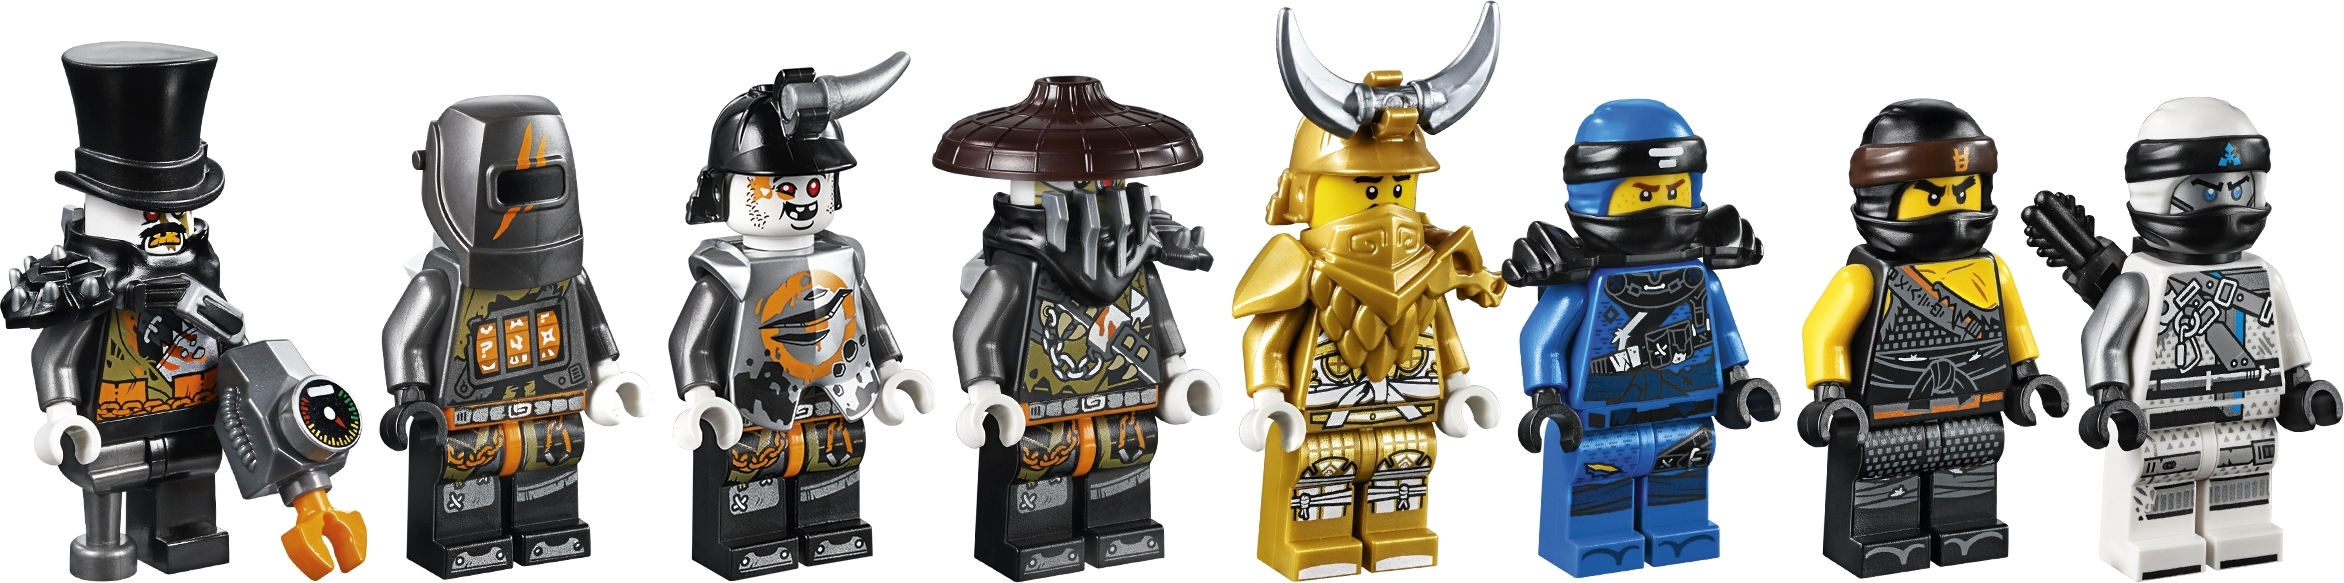 Dragon Pit 70655 Ninjago Buy Online At The Official Lego Shop My The latter briefly wore it before his body returned to his normal, old age. dragon pit 70655 ninjago buy